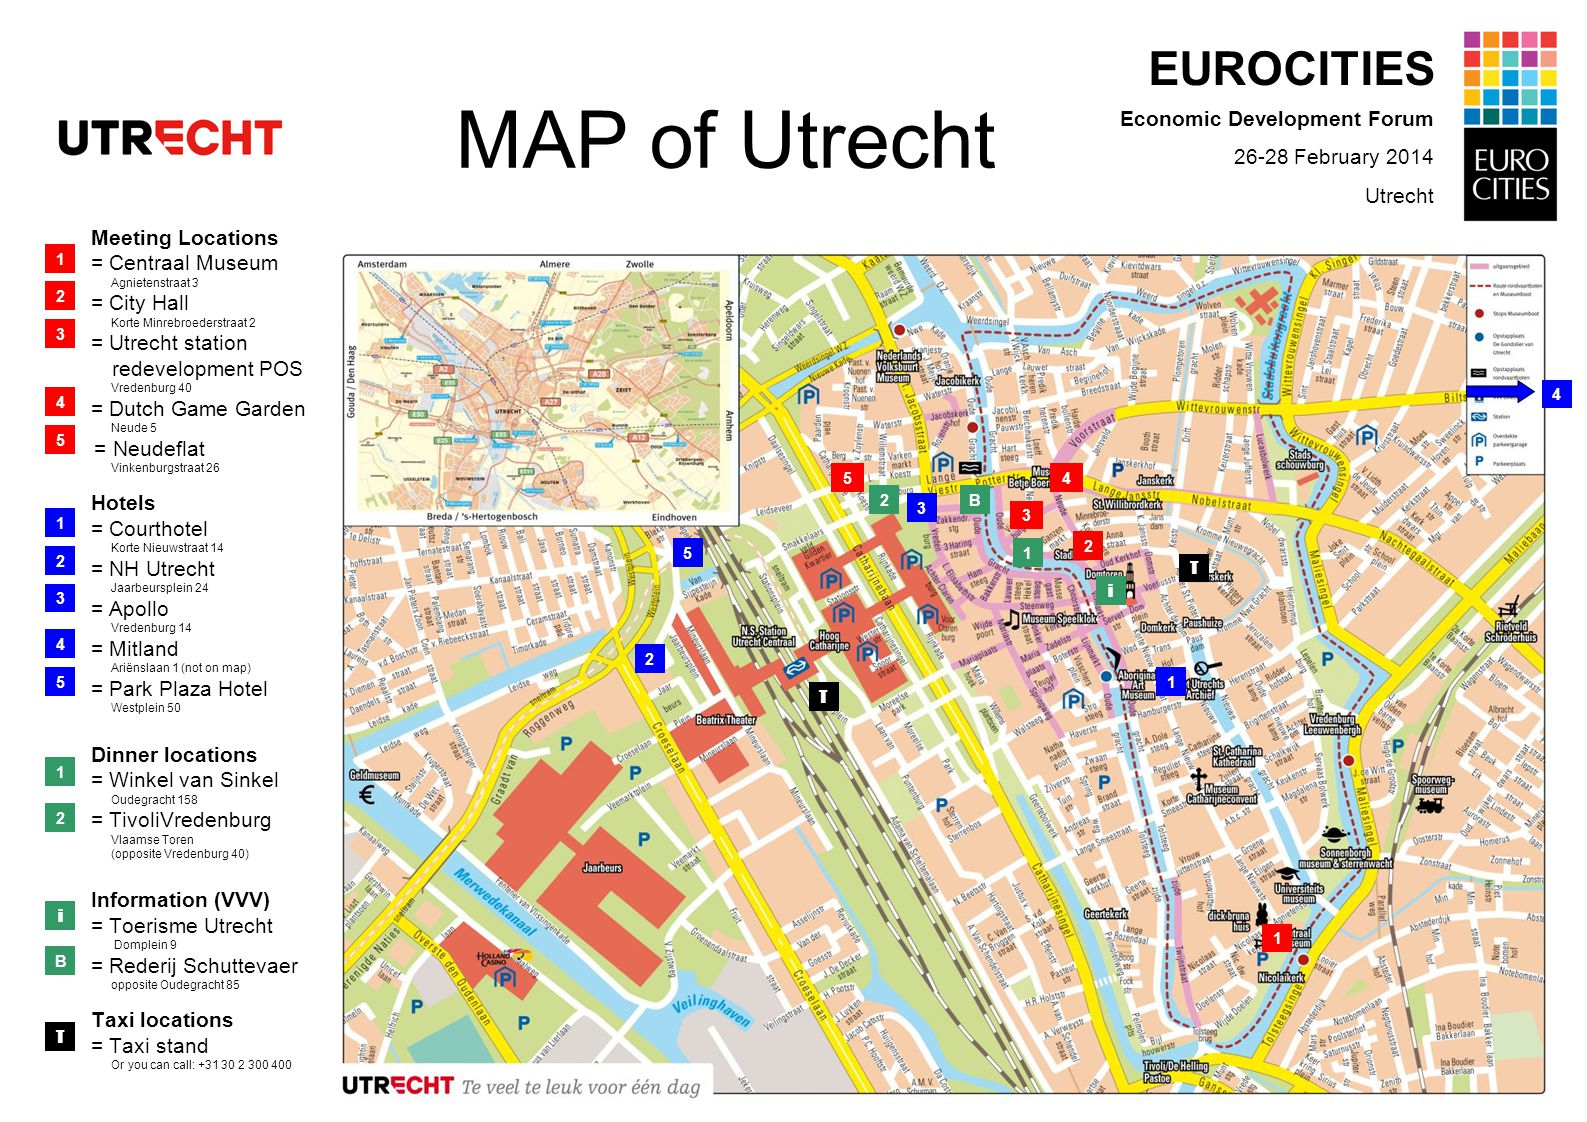 Meeting Locations = Centraal Museum Agnietenstraat 3 = City Hall Korte Minrebroederstraat 2 = Utrecht station _ _ redevelopment POS Vredenburg 40 = Du